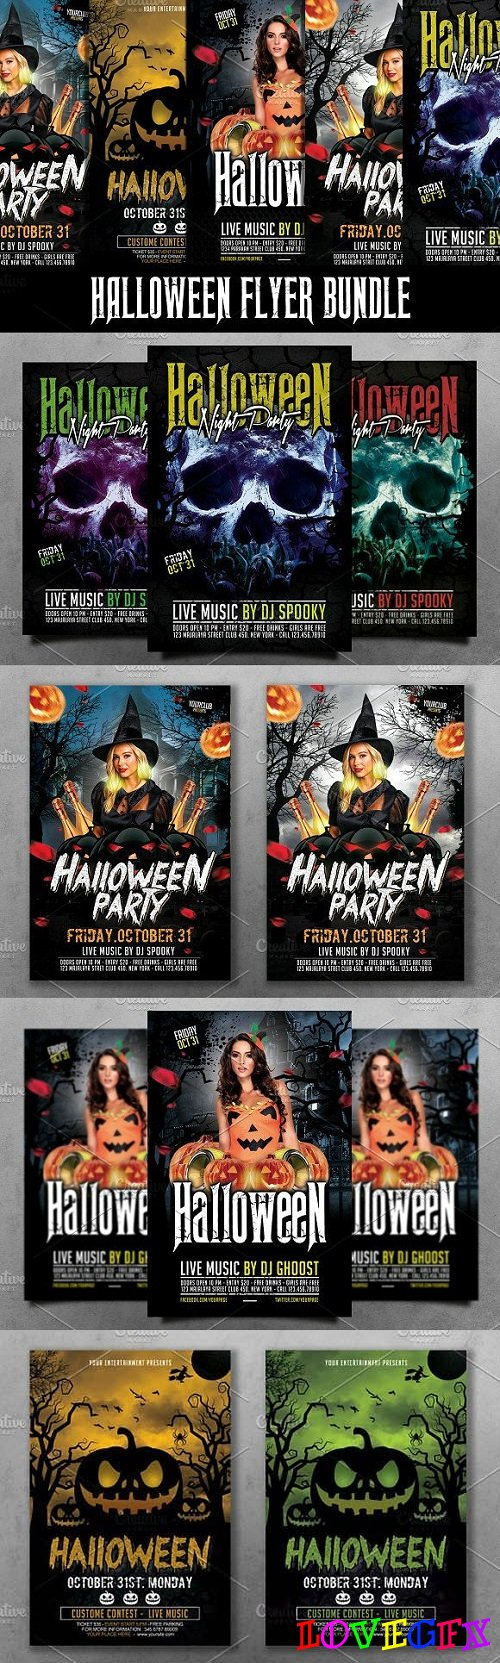 Halloween Flyer Bundle 1934090